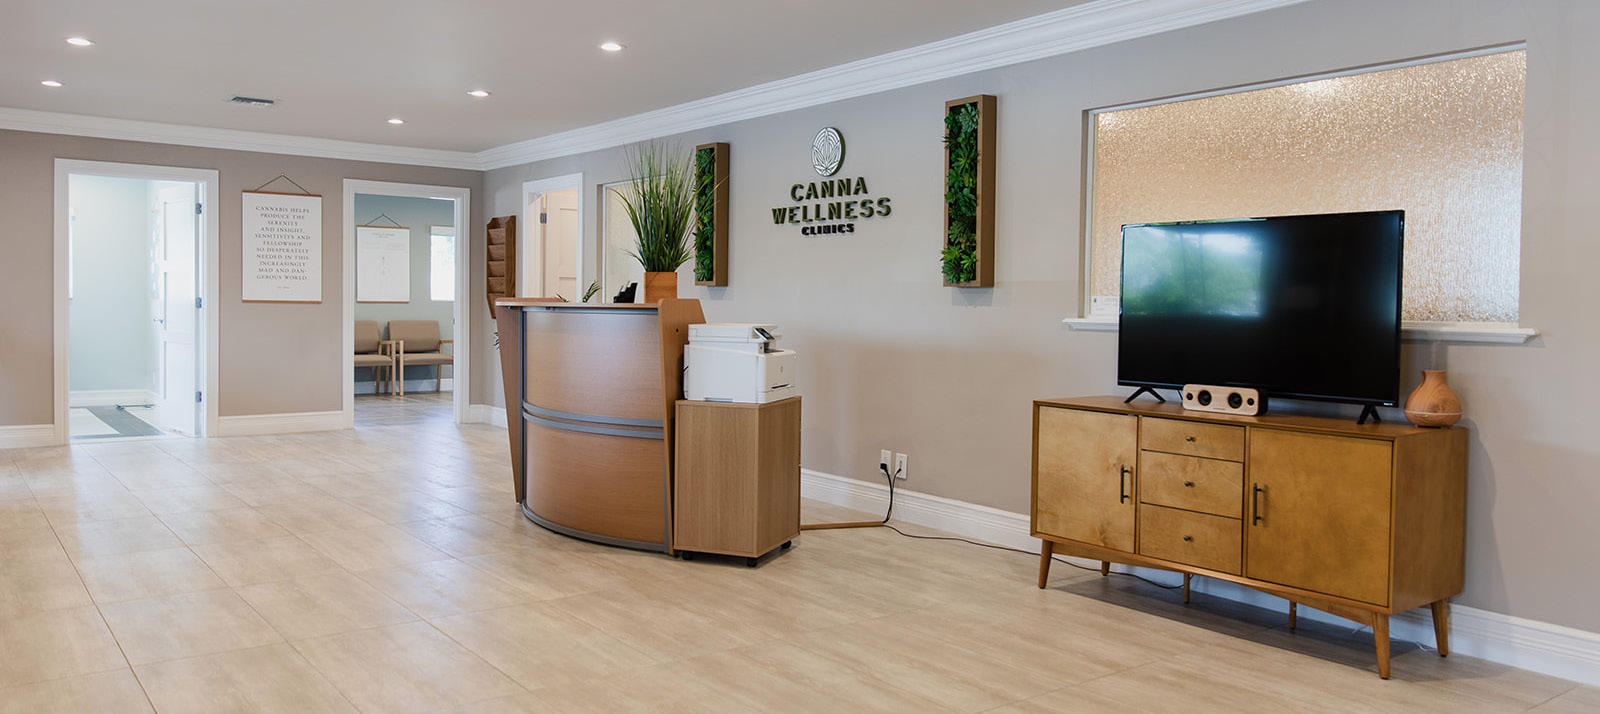 Photo of the welcome desk at Canna Wellness Clinics in Boynton Beach Florida